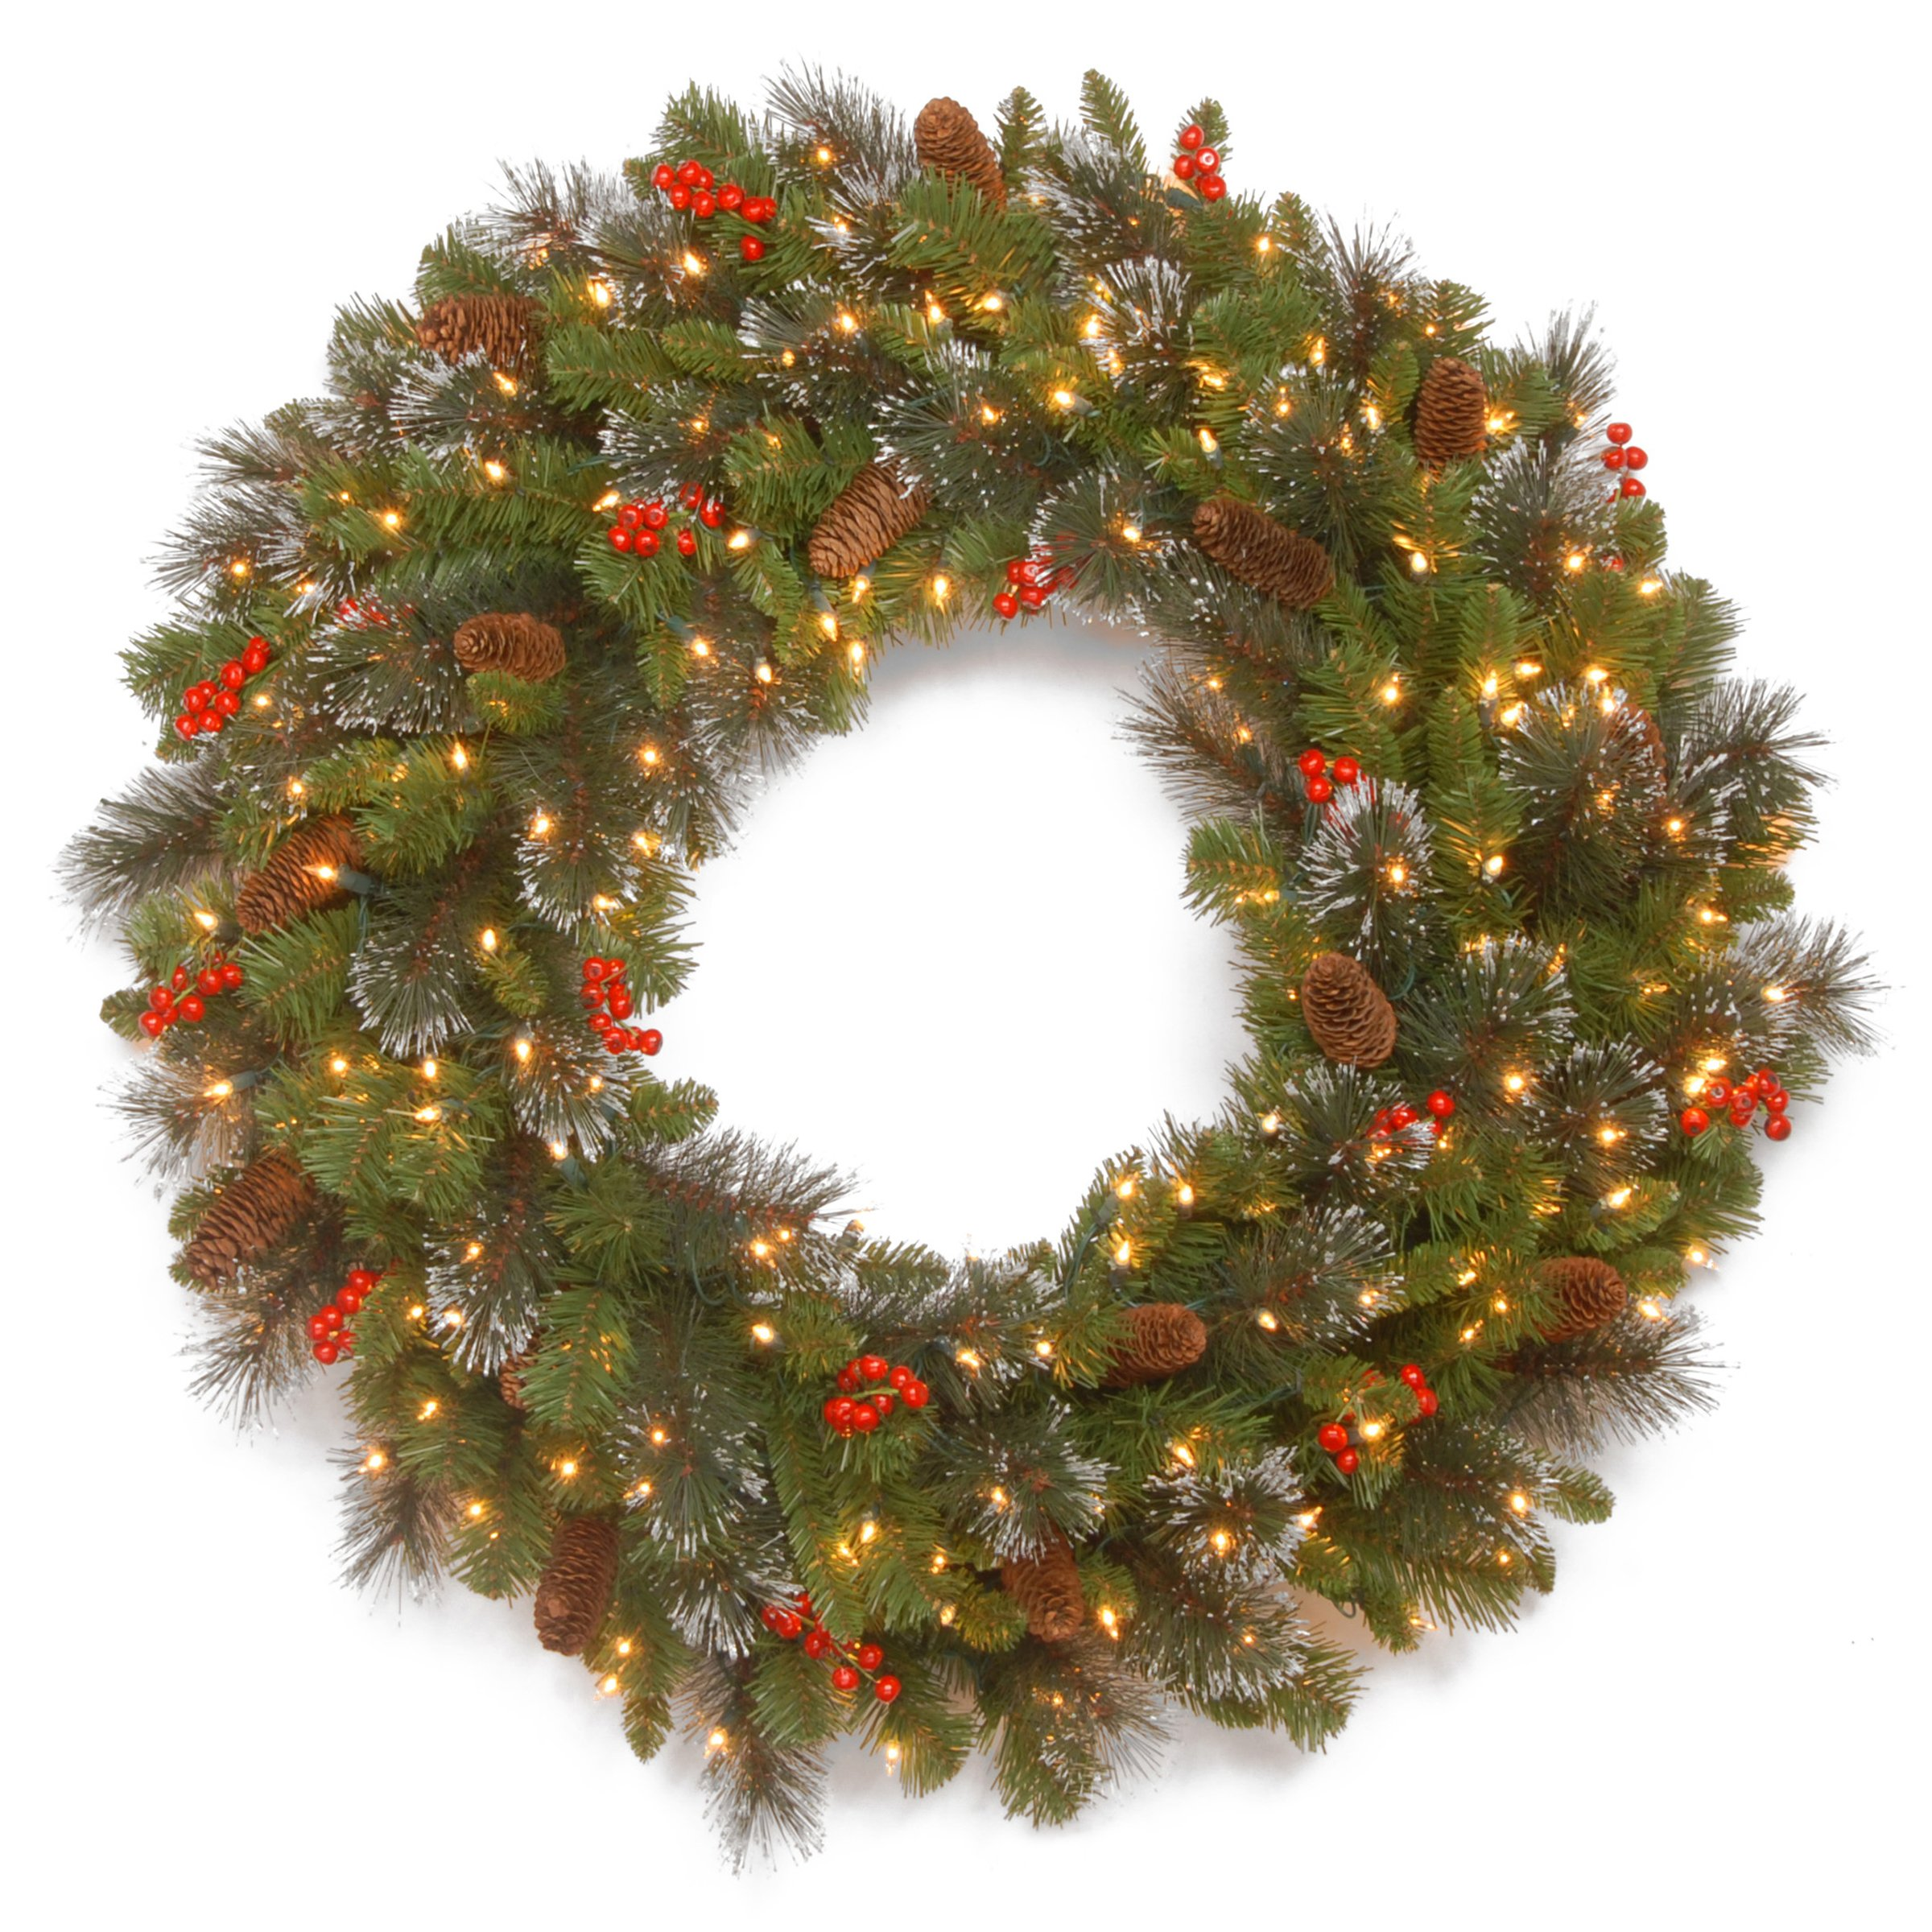 National Tree 30 Inch Crestwood Spruce Wreath with Cones, Glitter, Red Berries, Silver Bristle and 50 Battery Operated Warm White LED Lights (CW7-309L-30W-B1)